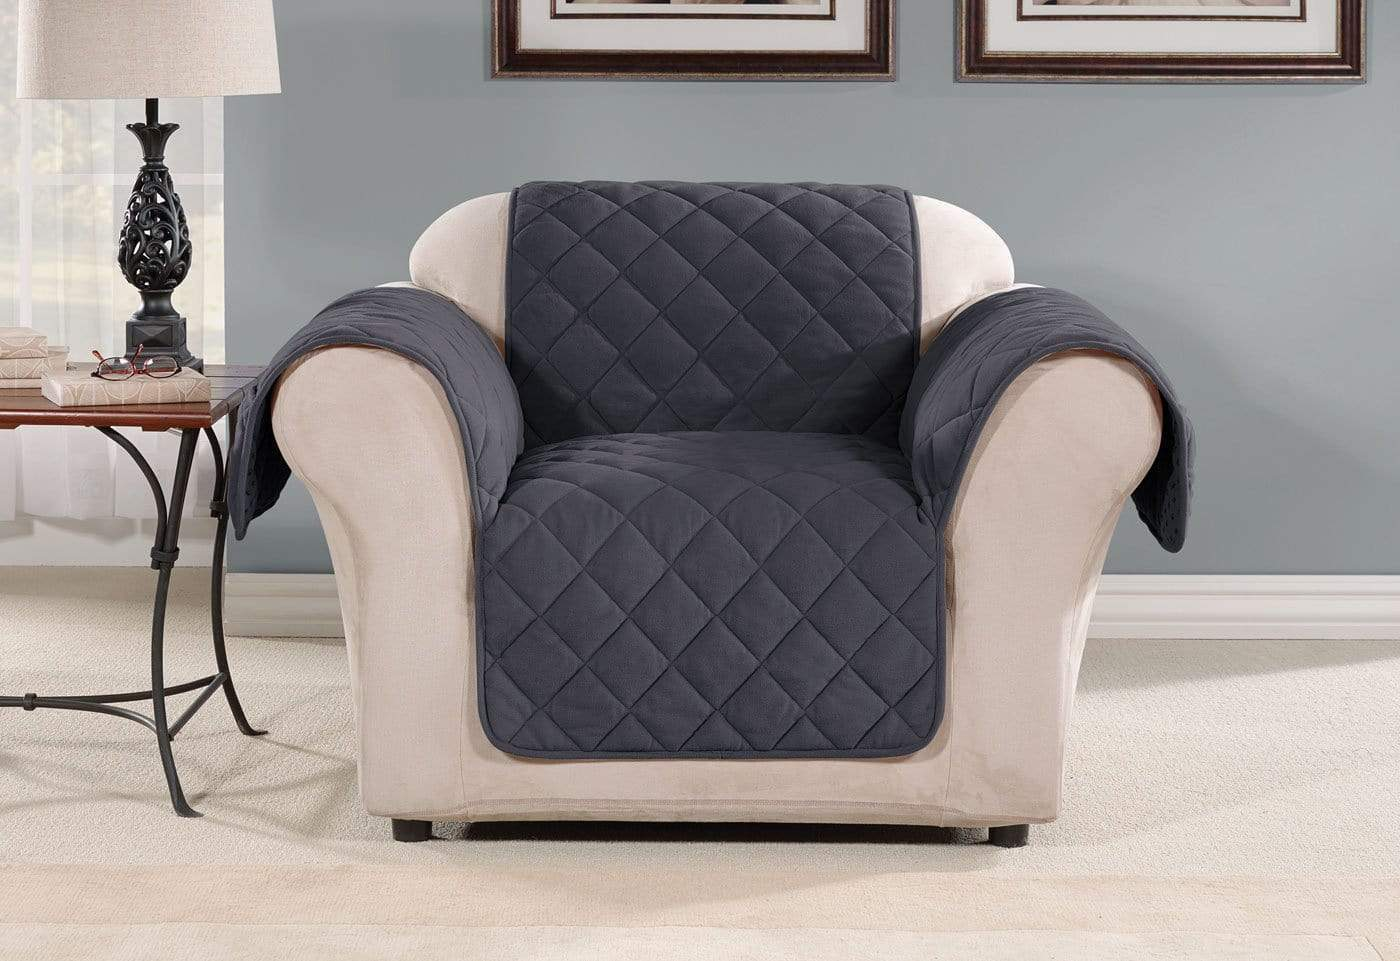 Oversized Microfleece Chair Furniture Cover Pet Furniture Cover Machine Washable - Chair / Storm Blue